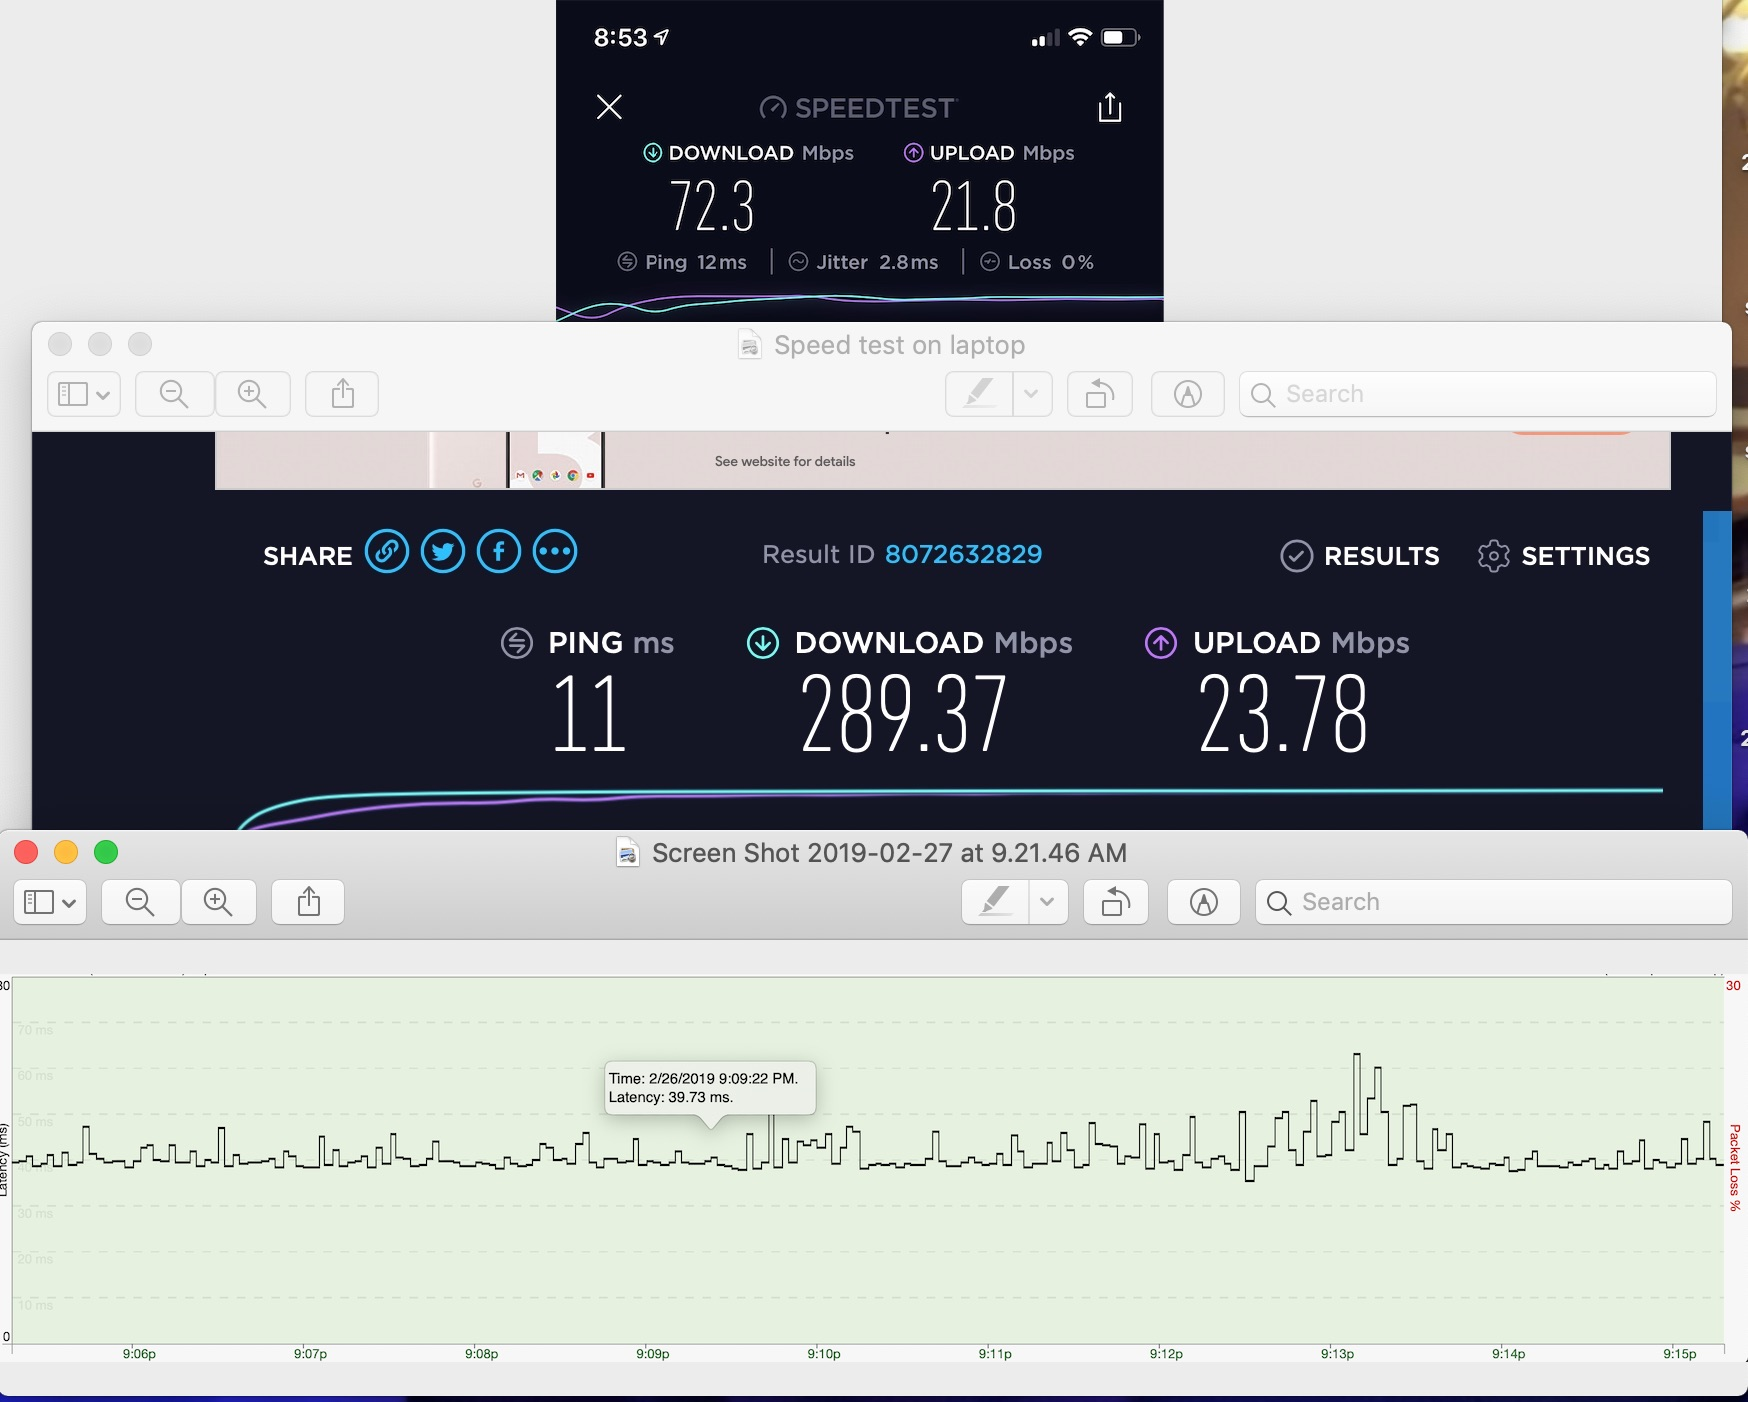 Re: Slow upload speeds with xr500 - Page 3 - NETGEAR Communities